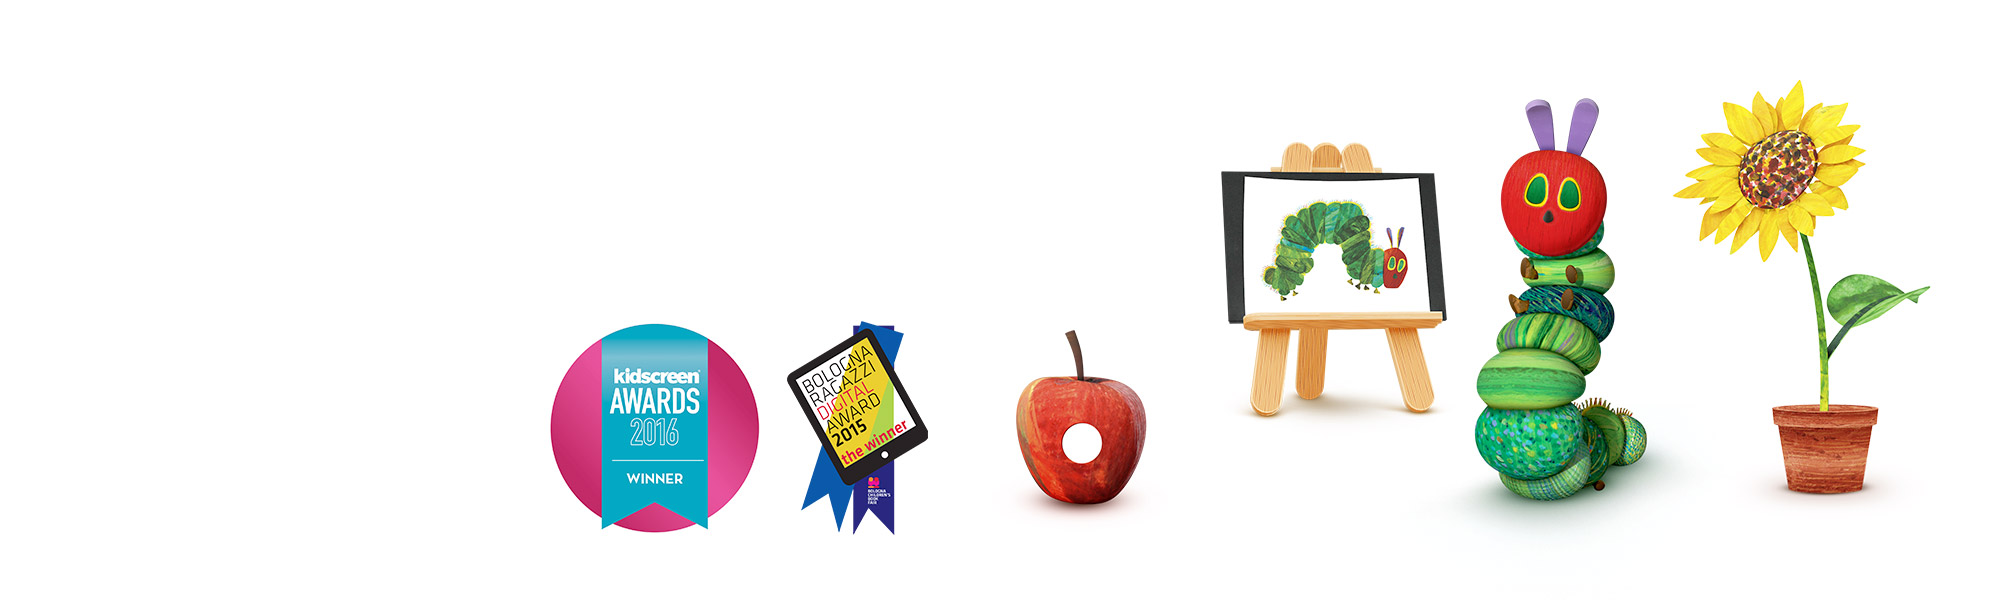 My Very Hungry Caterpillar winner of the BolognaRagazzi Digital award and the Kidscreen 2016 award